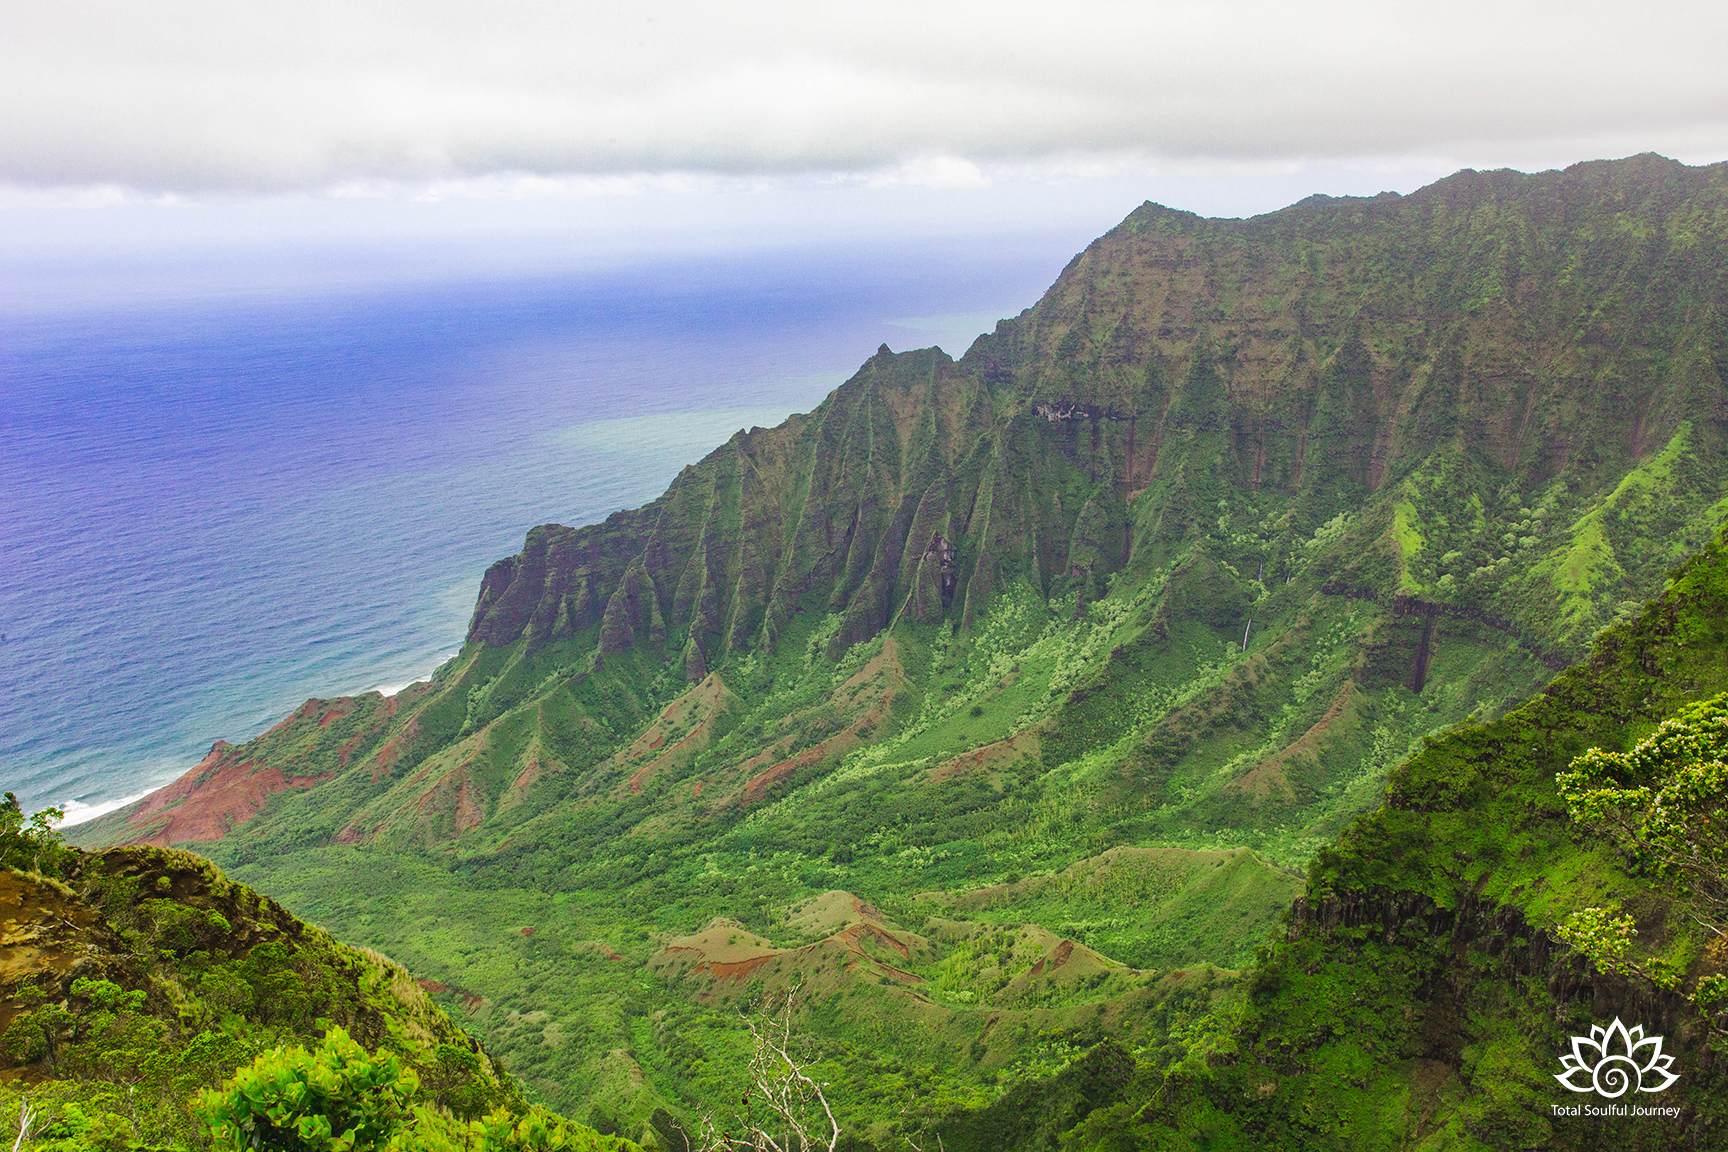 PHotography of The Kalalau Lookout by Paul Garrett